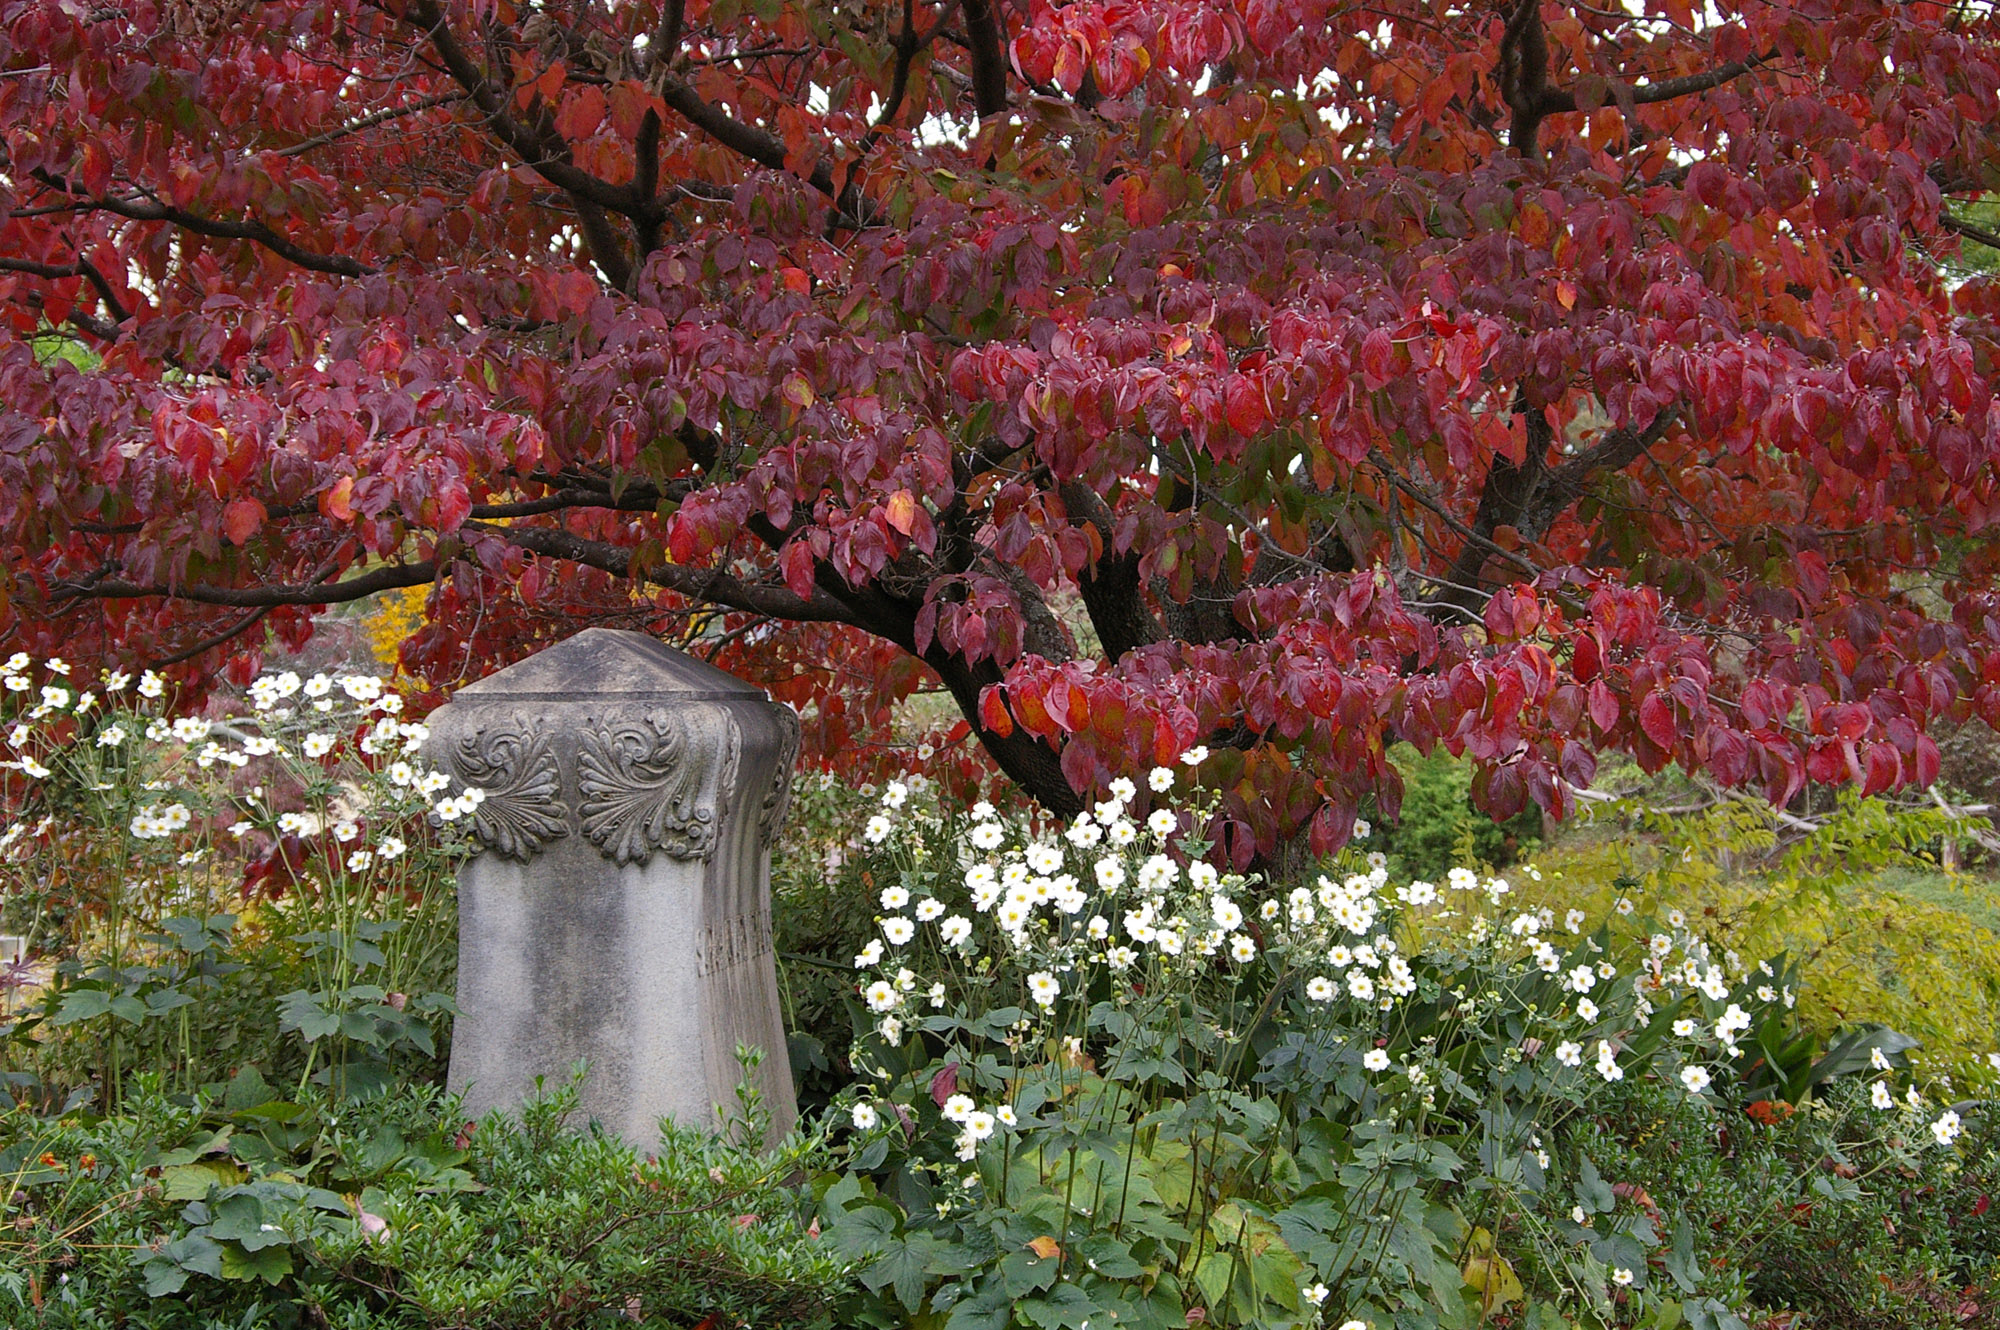 Dogwood and Japanese Anemones at Oakland Cemetery in Atlanta